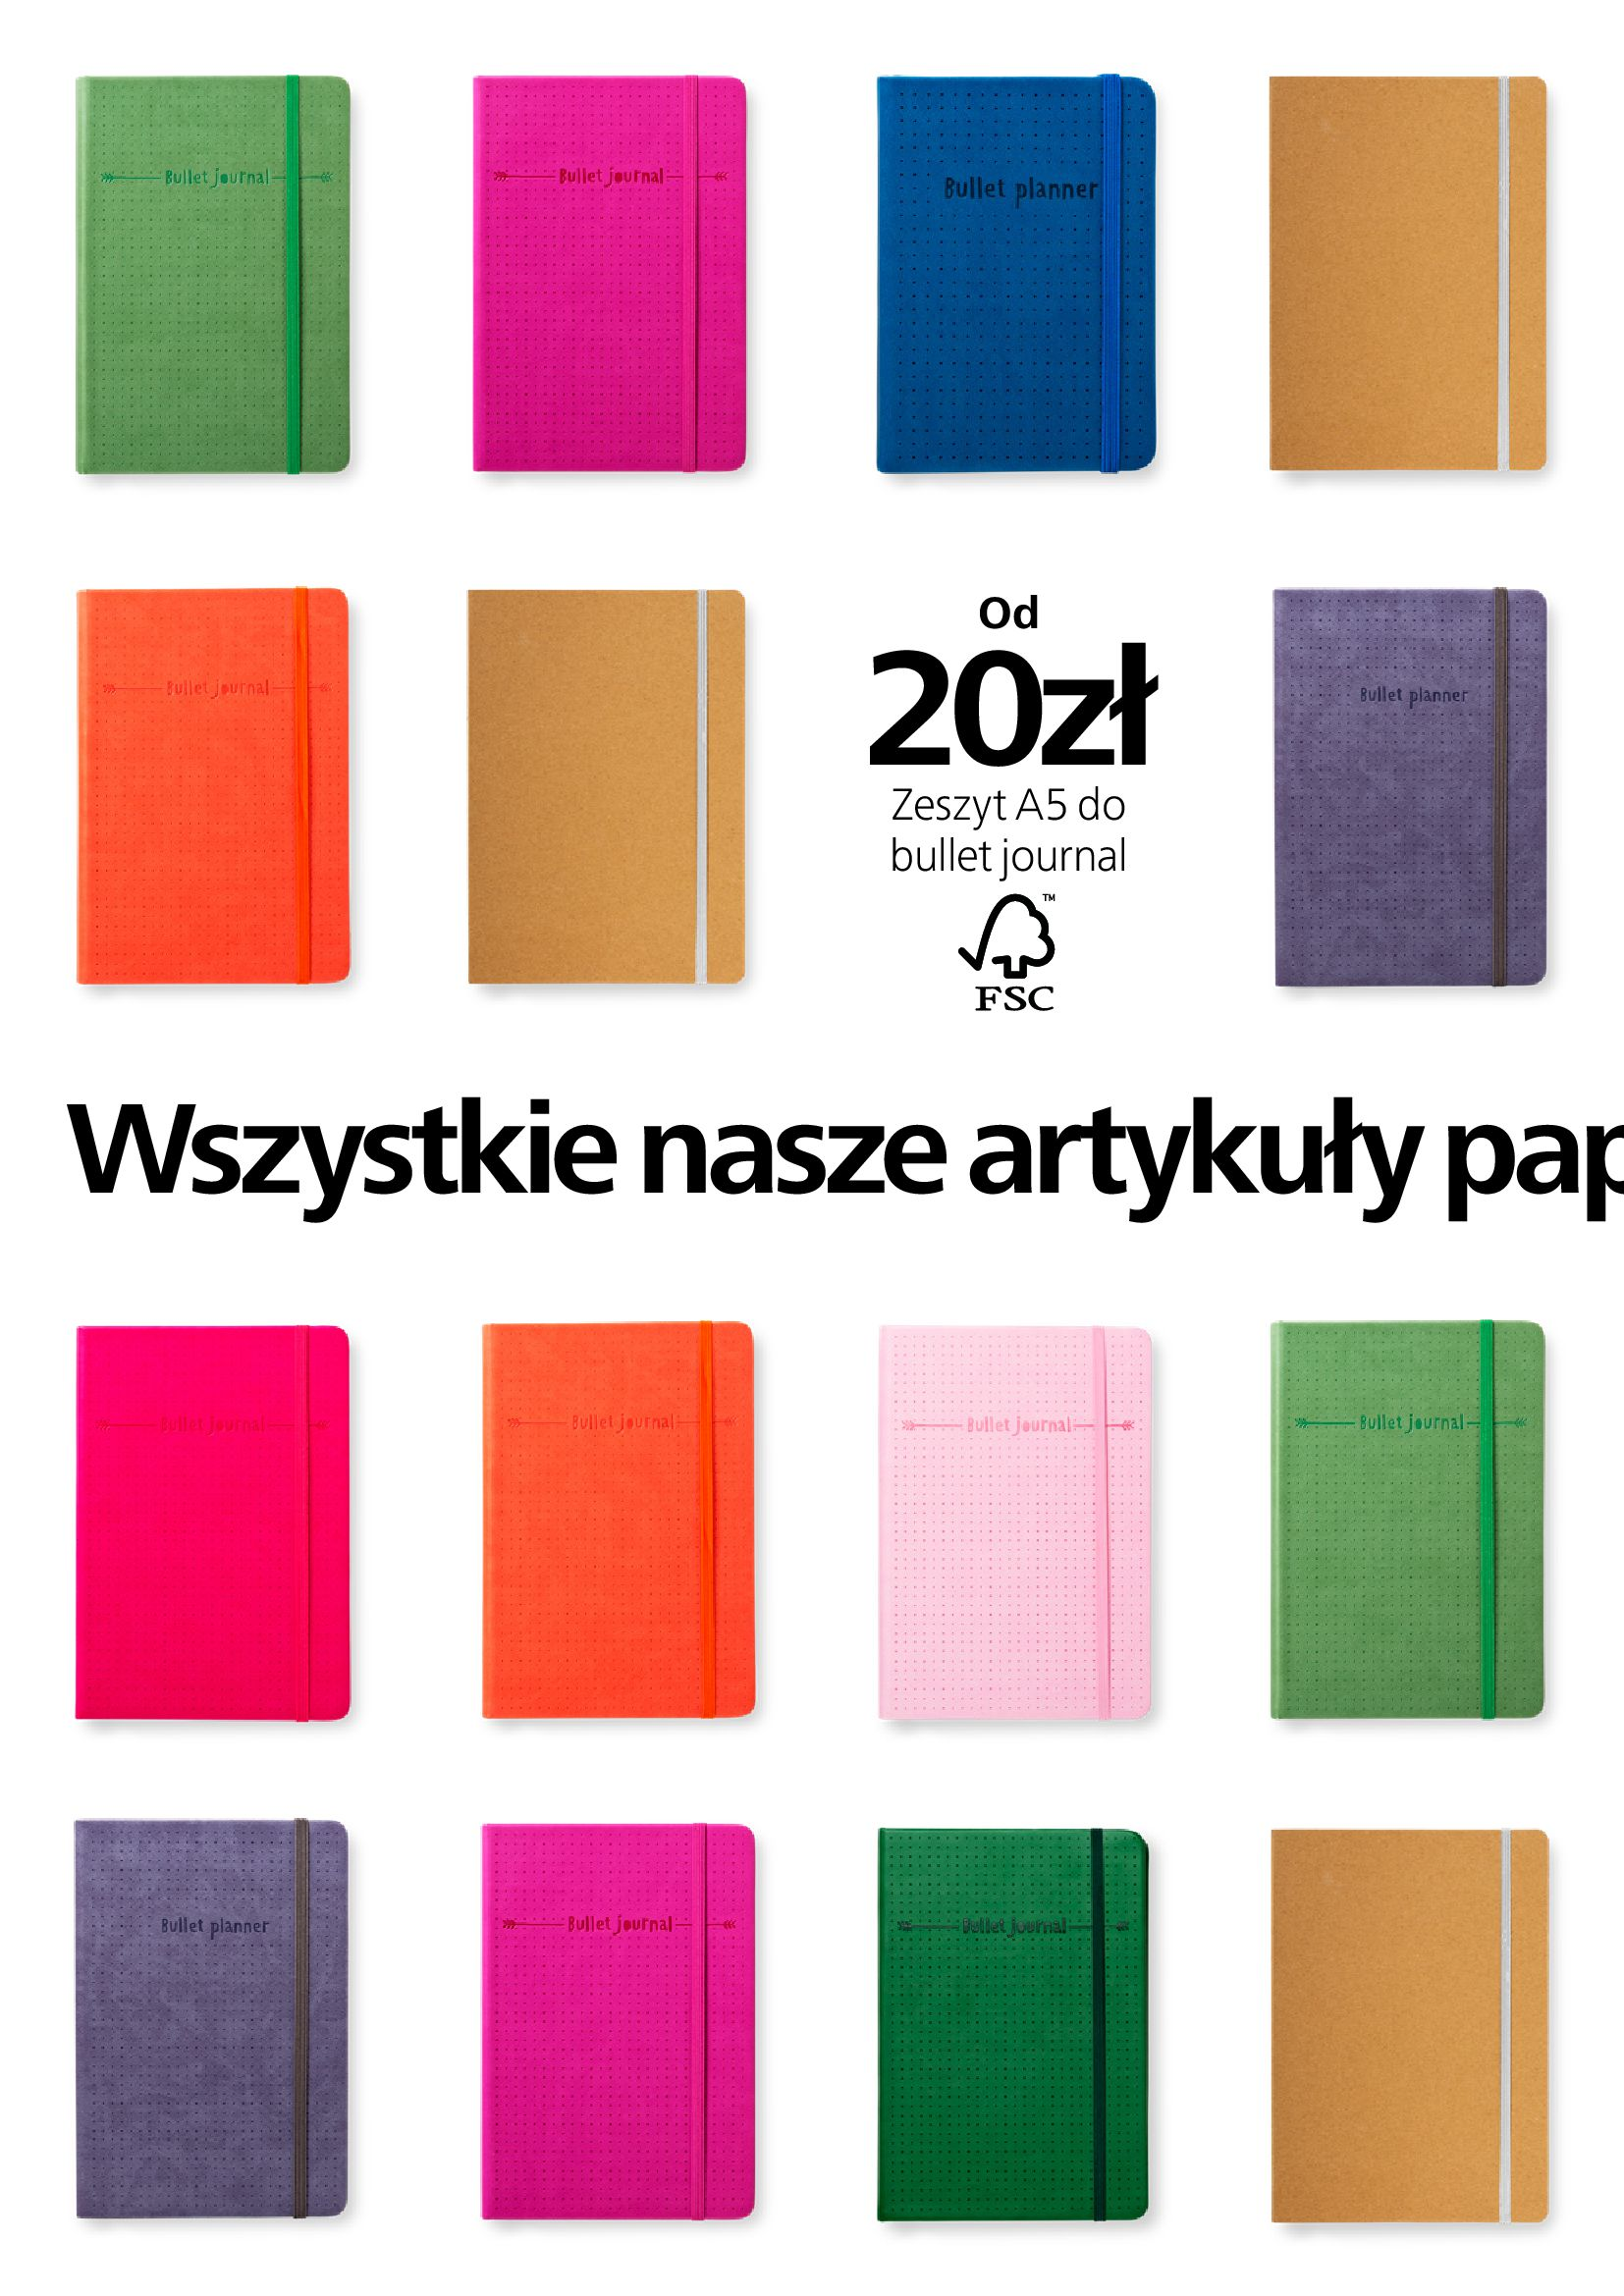 Gazetka Flying tiger: Katalog wiosna 2021-04-07 page-28